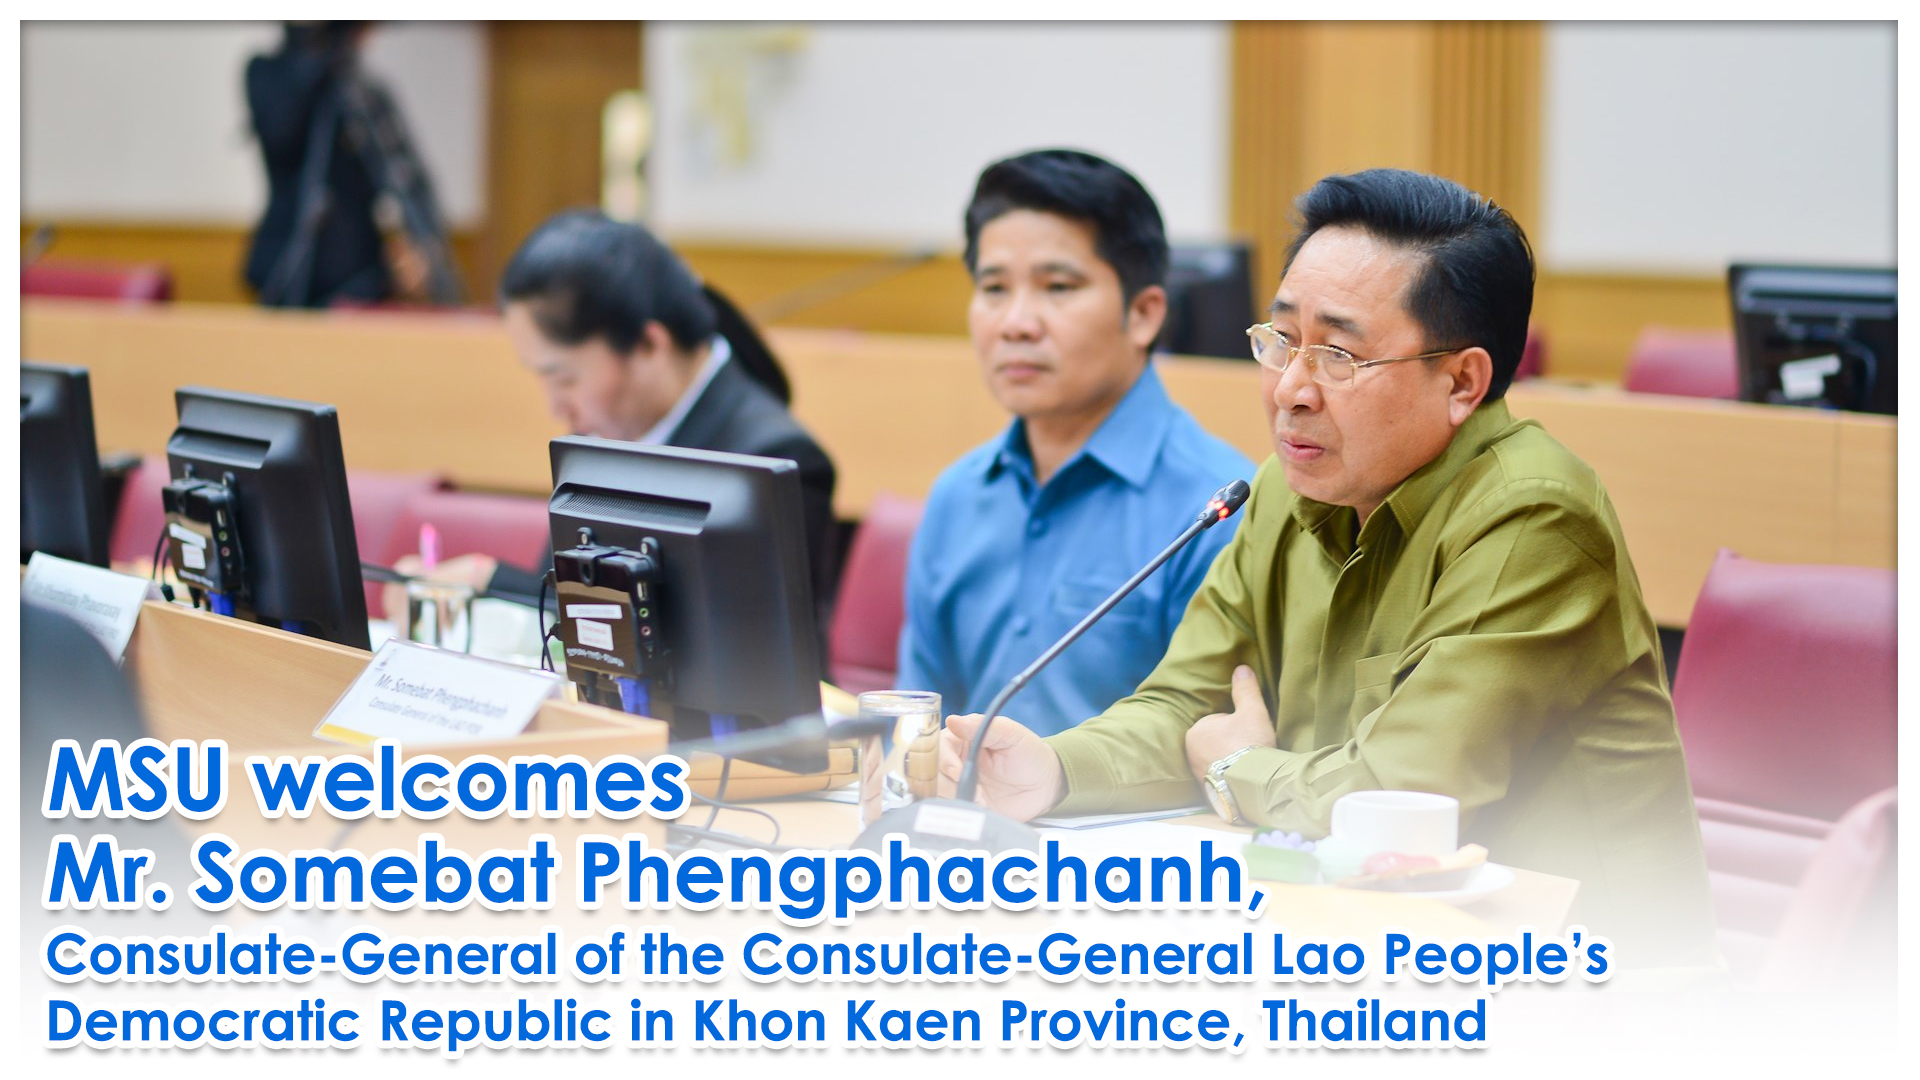 MSU welcomes Mr. Somebat Phengphachanh, Consulate-General of the Consulate-General Lao People's Democratic Republic in Khon Kaen Province, Thailand